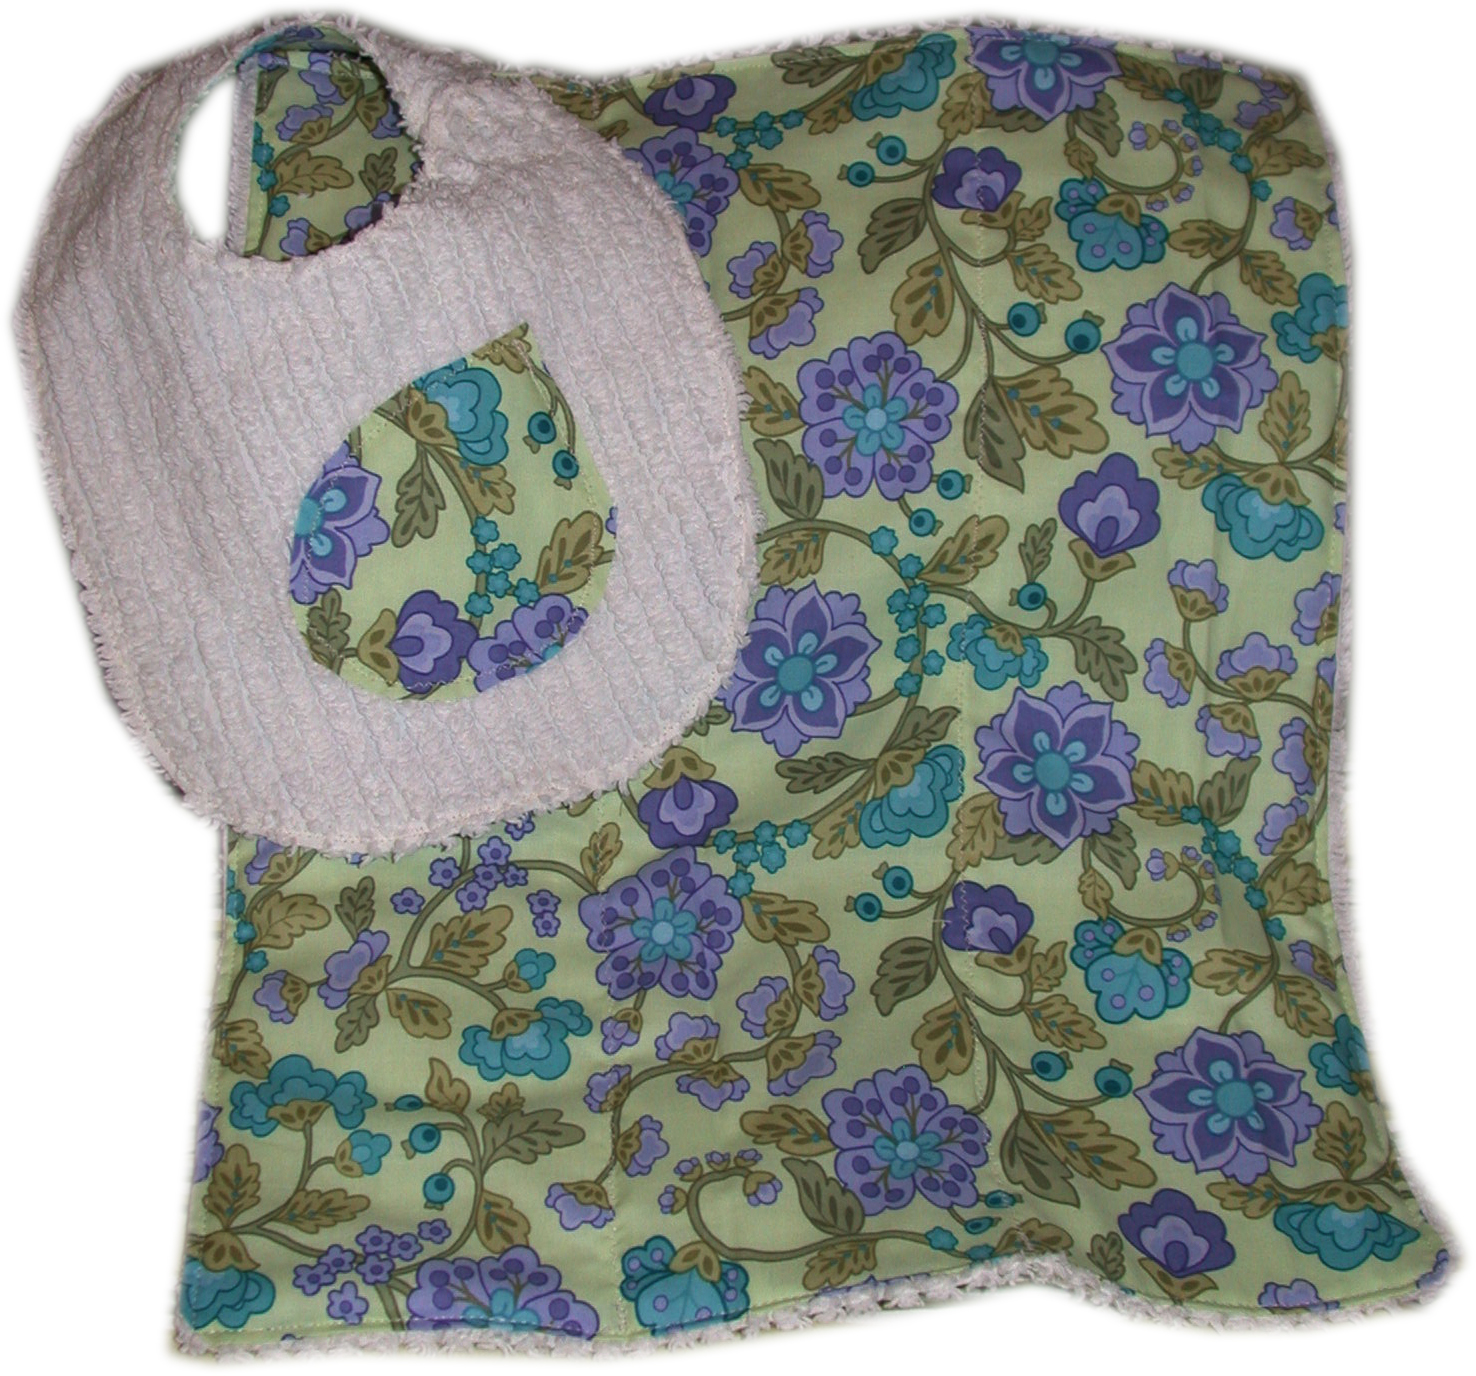 Set of Reversible Chenille Bib and Burp Cloth, Green & Violet [TDBBS0016] - $15.00 : Tiddle Diddle Handmade Shoppe, every design is unique, because unique is gift!